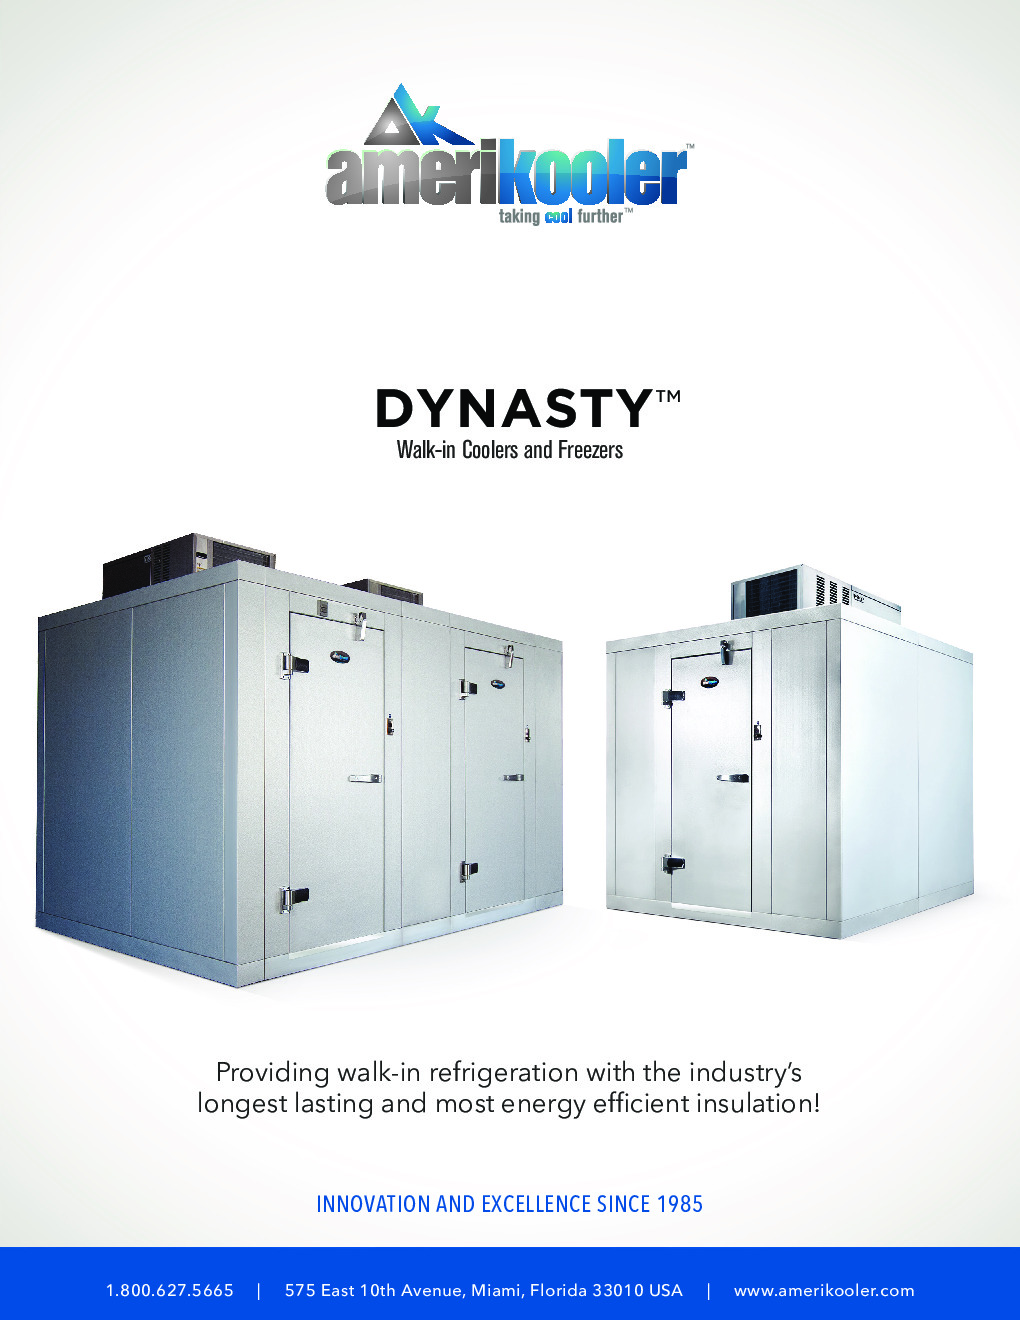 AmeriKooler DW081377N-5/8-SC 8' X 13' Walk-In Cooler, 8' L Cooler without Floor and 5' L Freezer, Self Contained